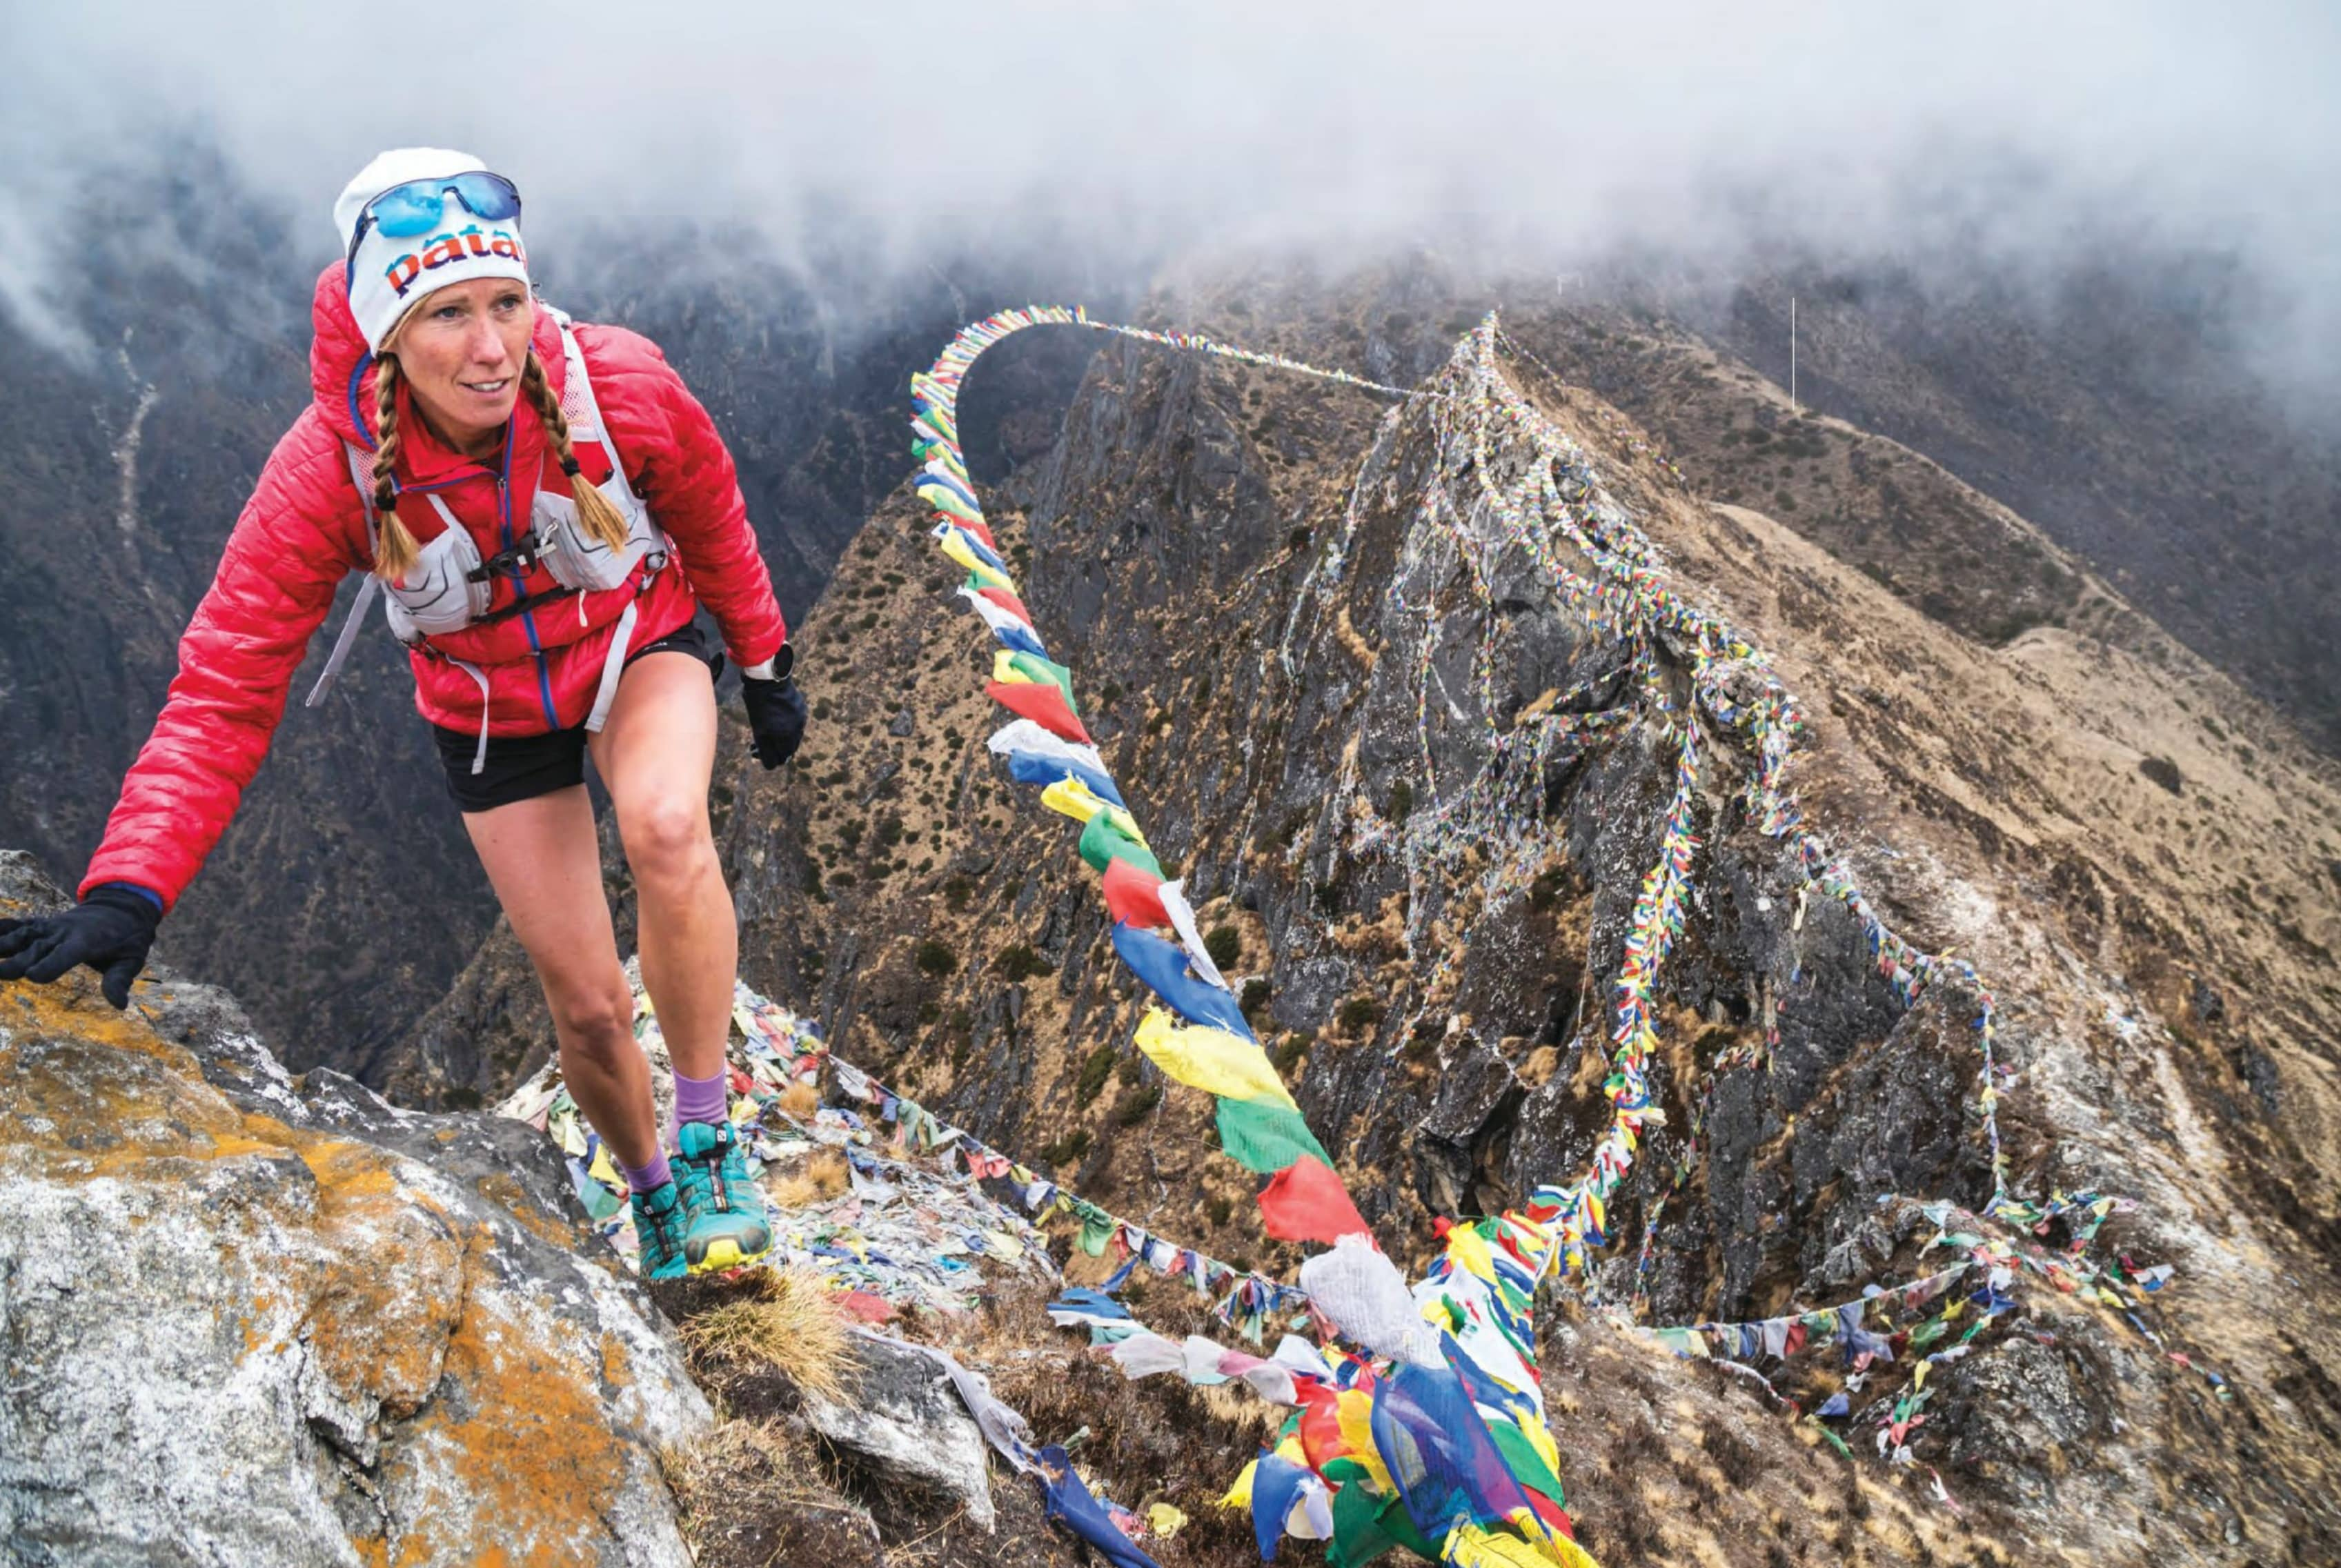 Running Nepal's 3 Passes Trail Takes You Off The Beaten Mule Path